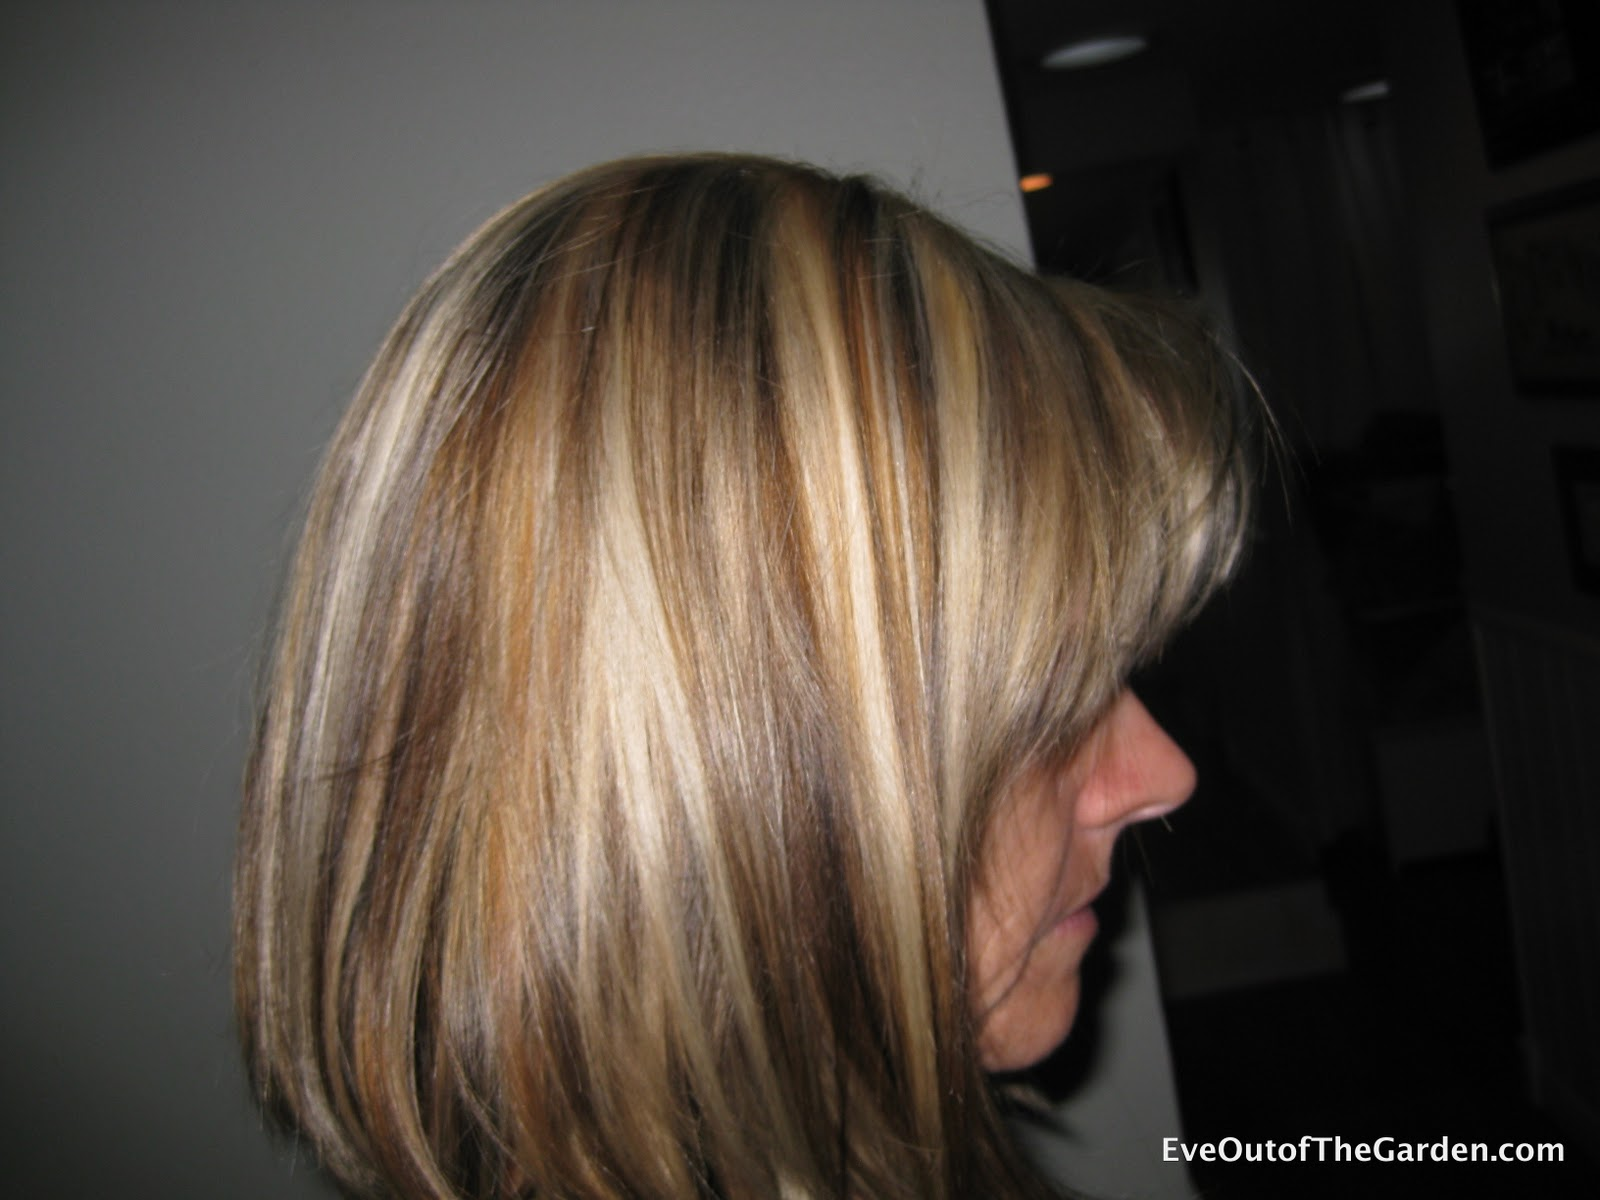 Blonde Highlights and Lowlights - Eve Out of the Garden